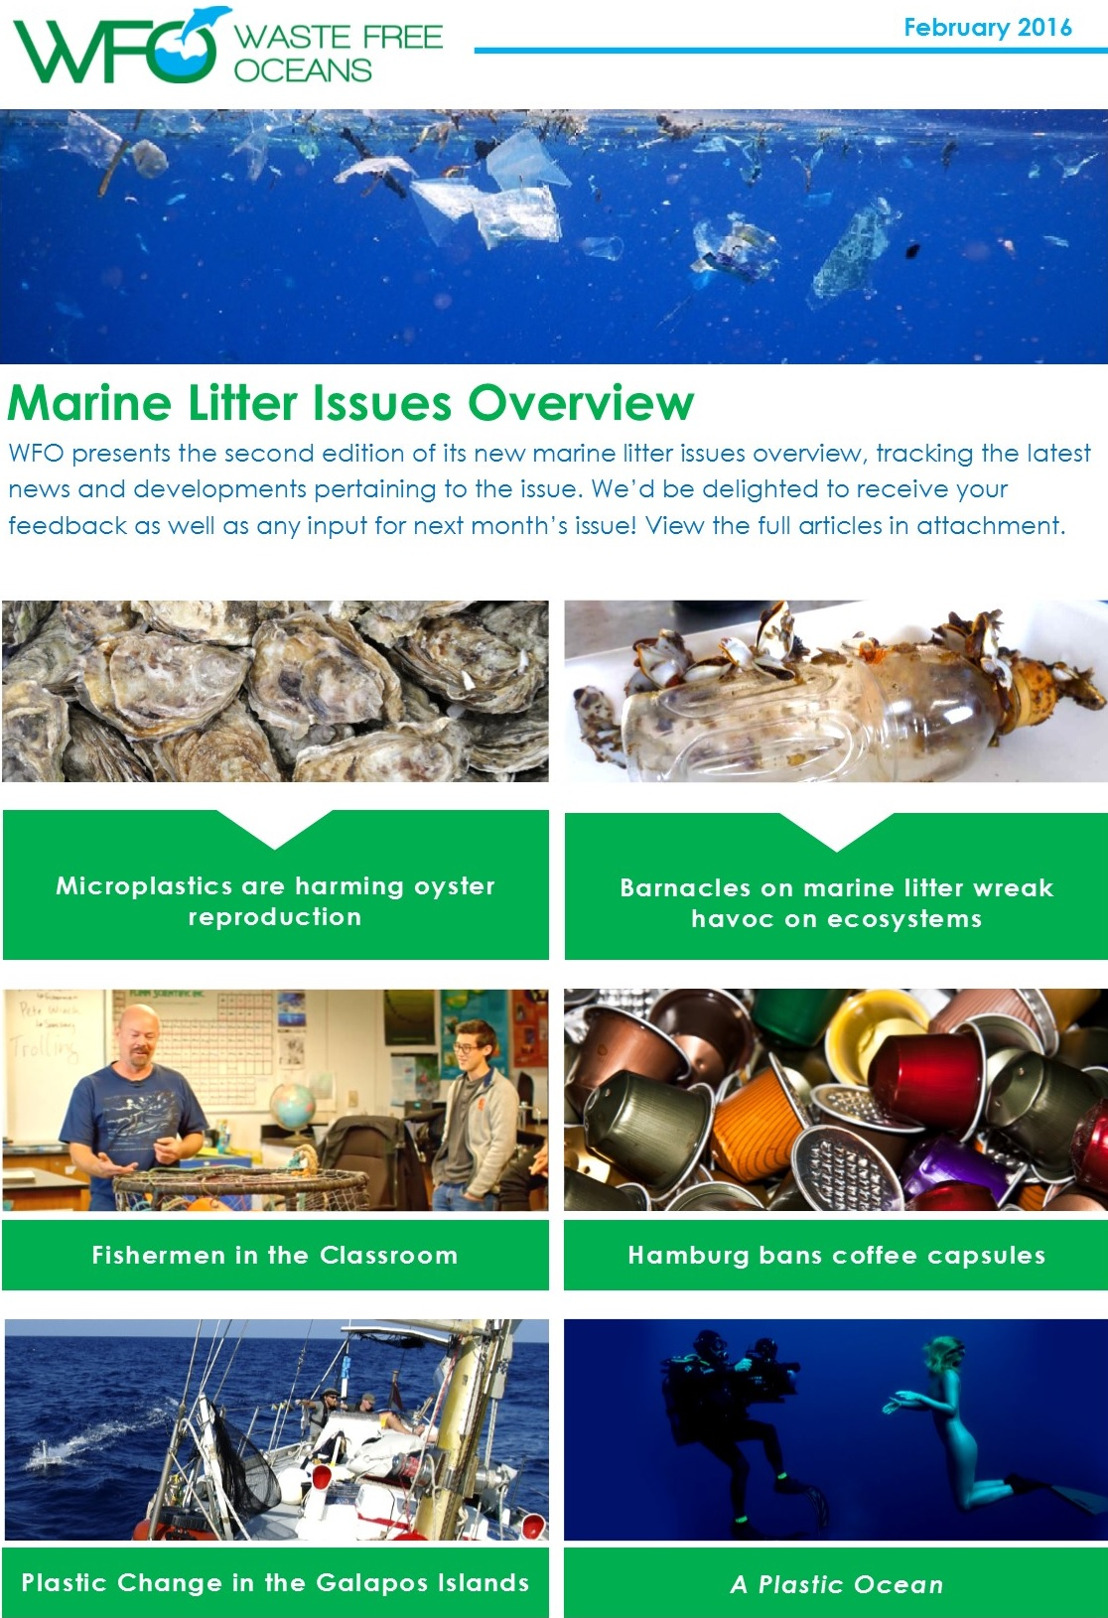 WFO Marine Litter Issues Overview